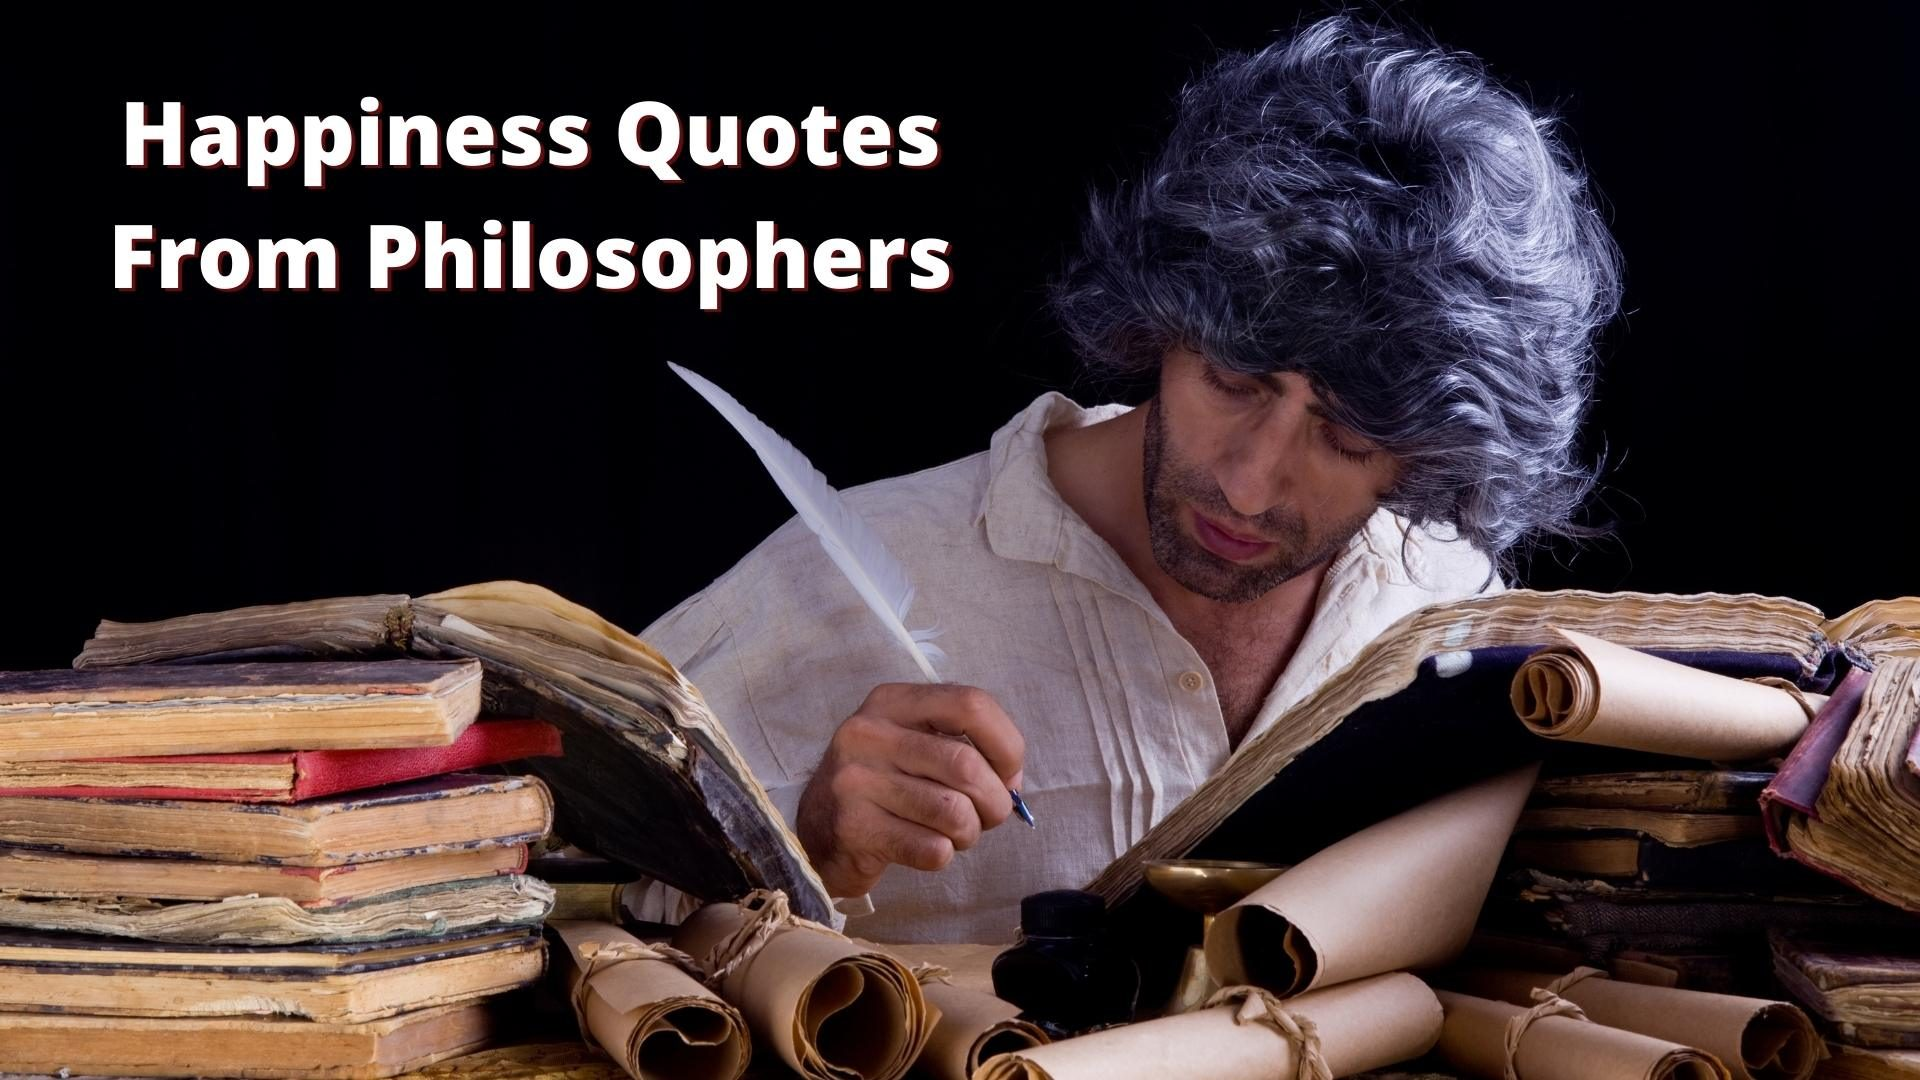 short happiness quotes from philosophers